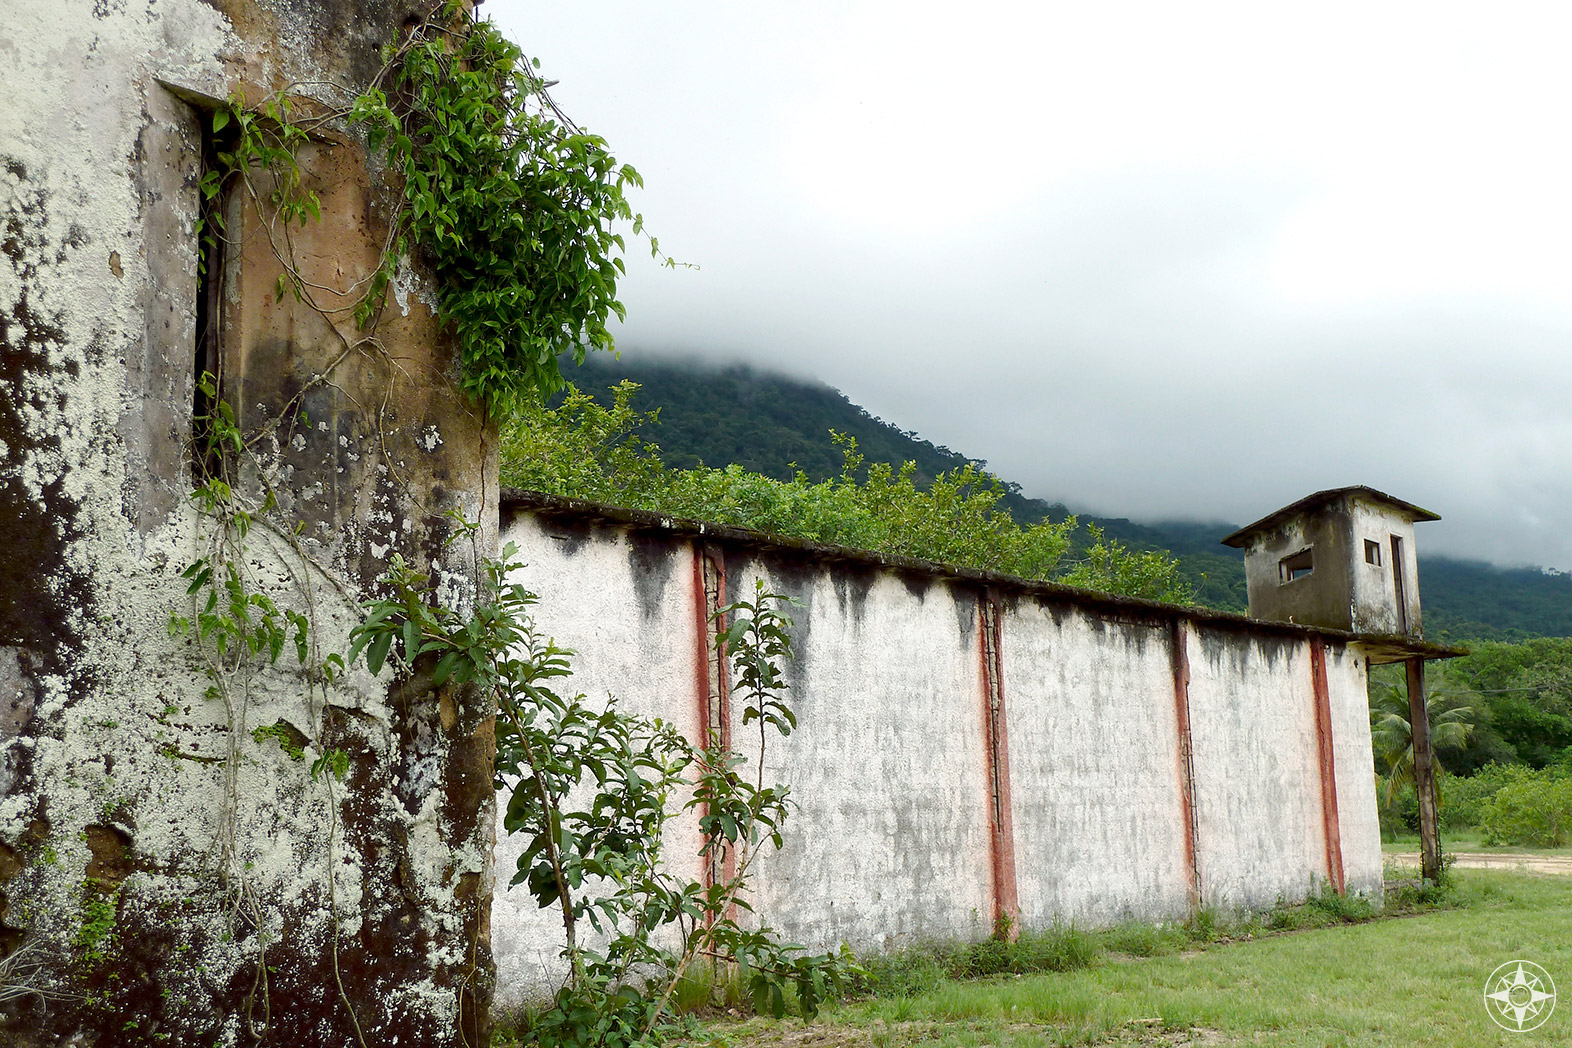 Nature take back over an abandoned prison building in Dois Rios on Ilha Grande.